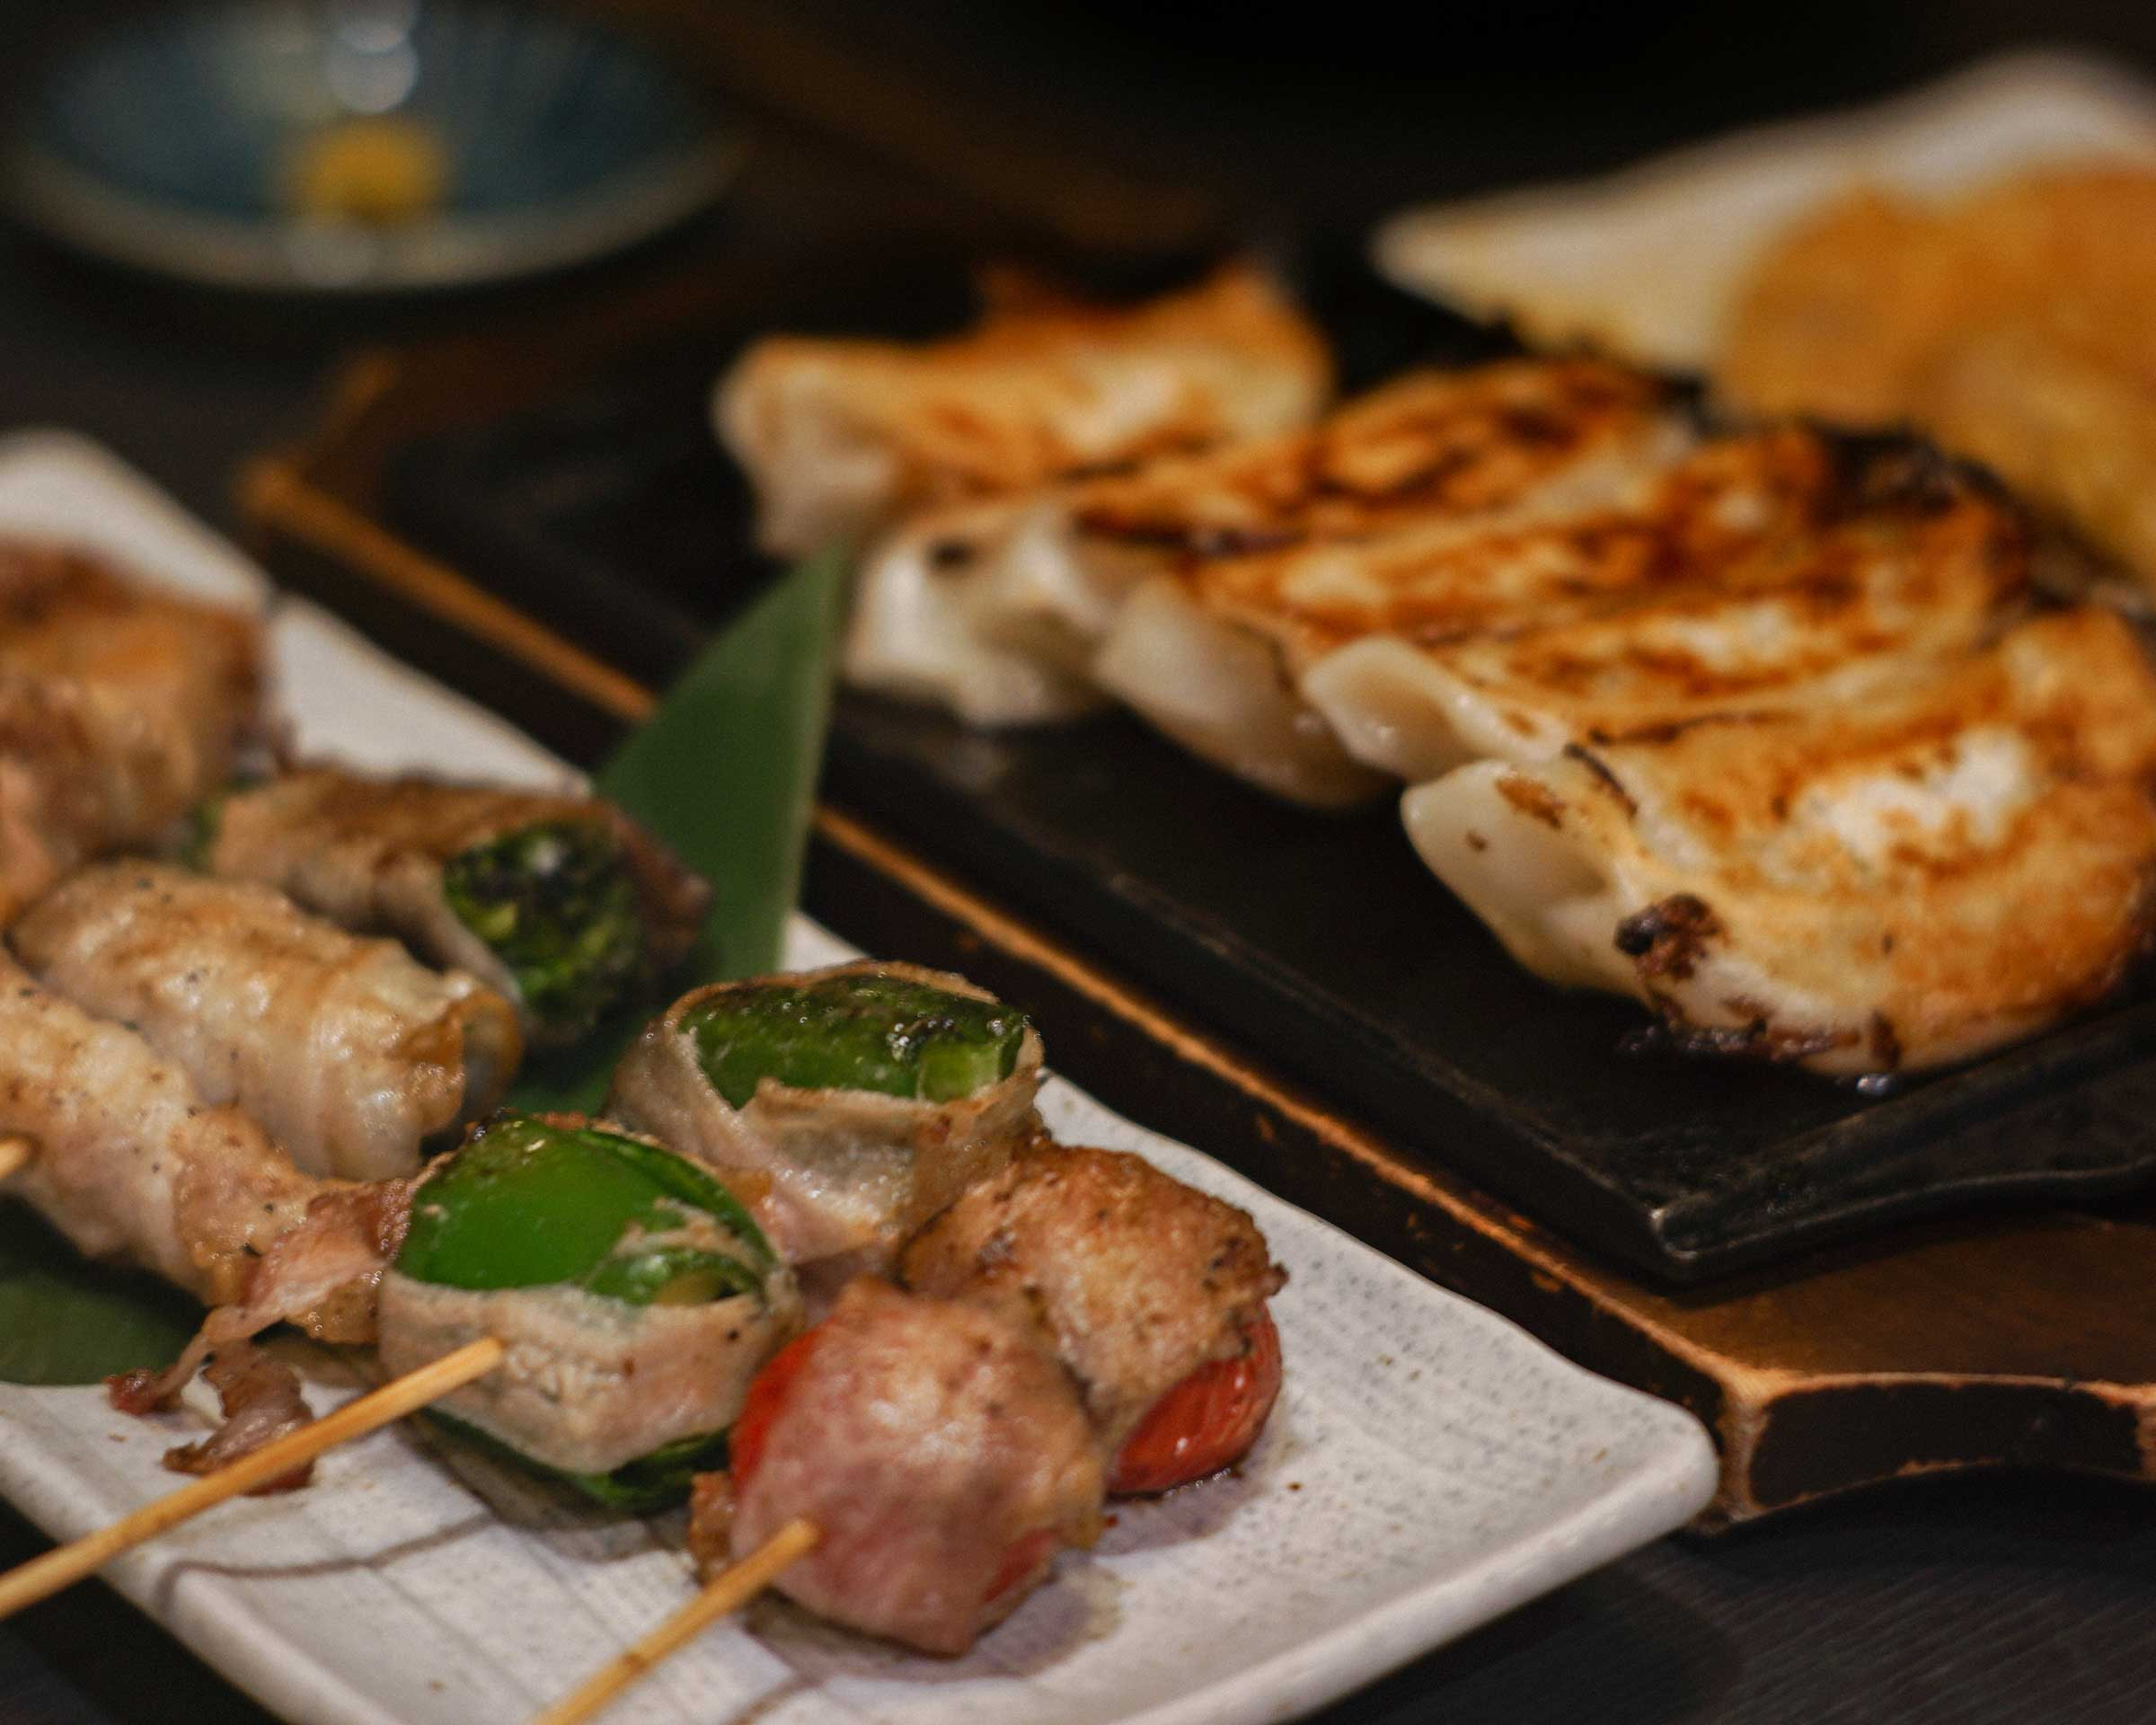 Grilled skewers and gyoza we ordered in the izakaya